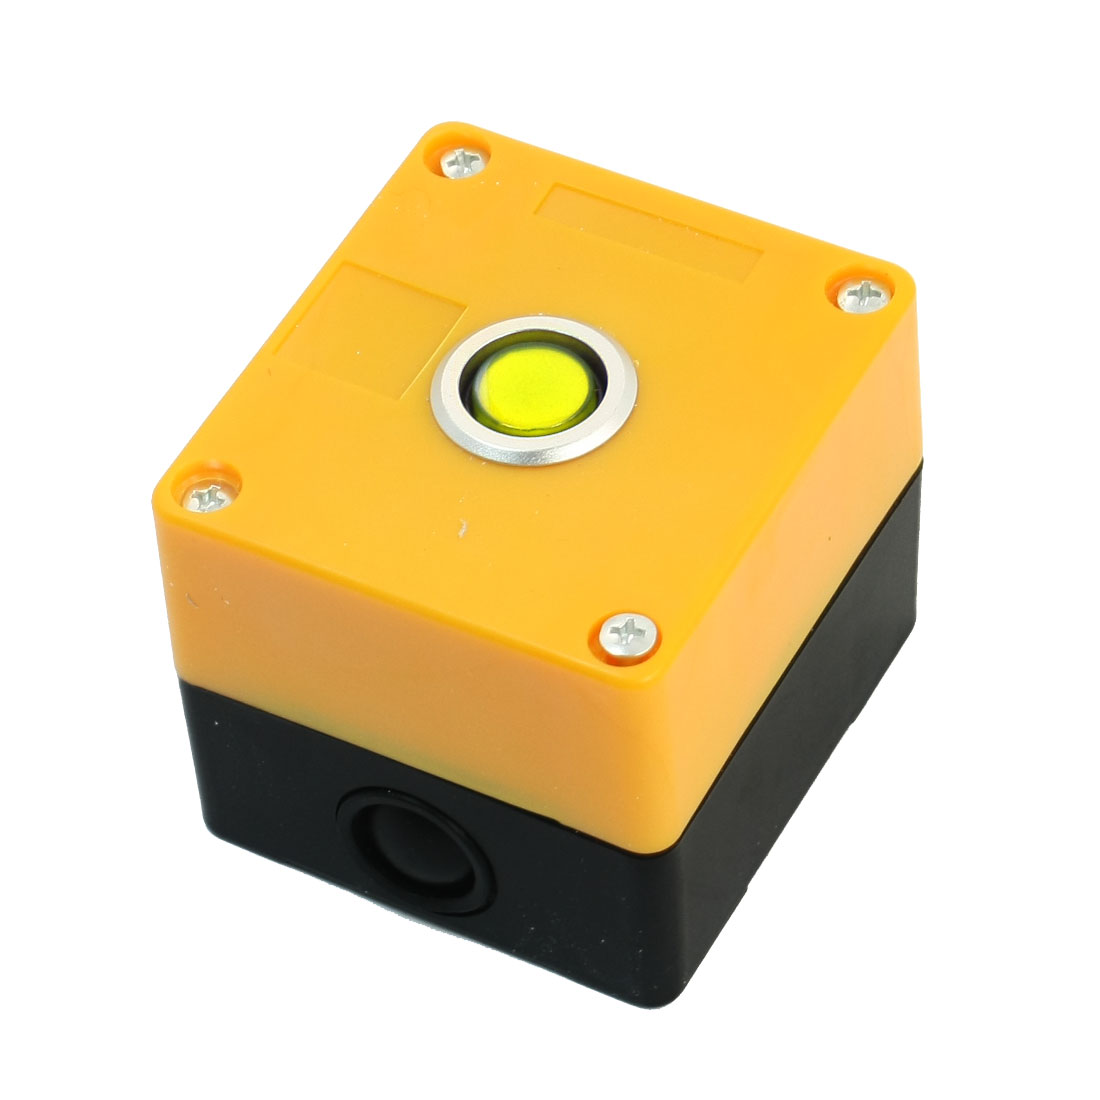 AC220V 5A SPDT 1NO 1NC Self-Locking Yellow Button Plastic Pushbutton Station Switch Control Box